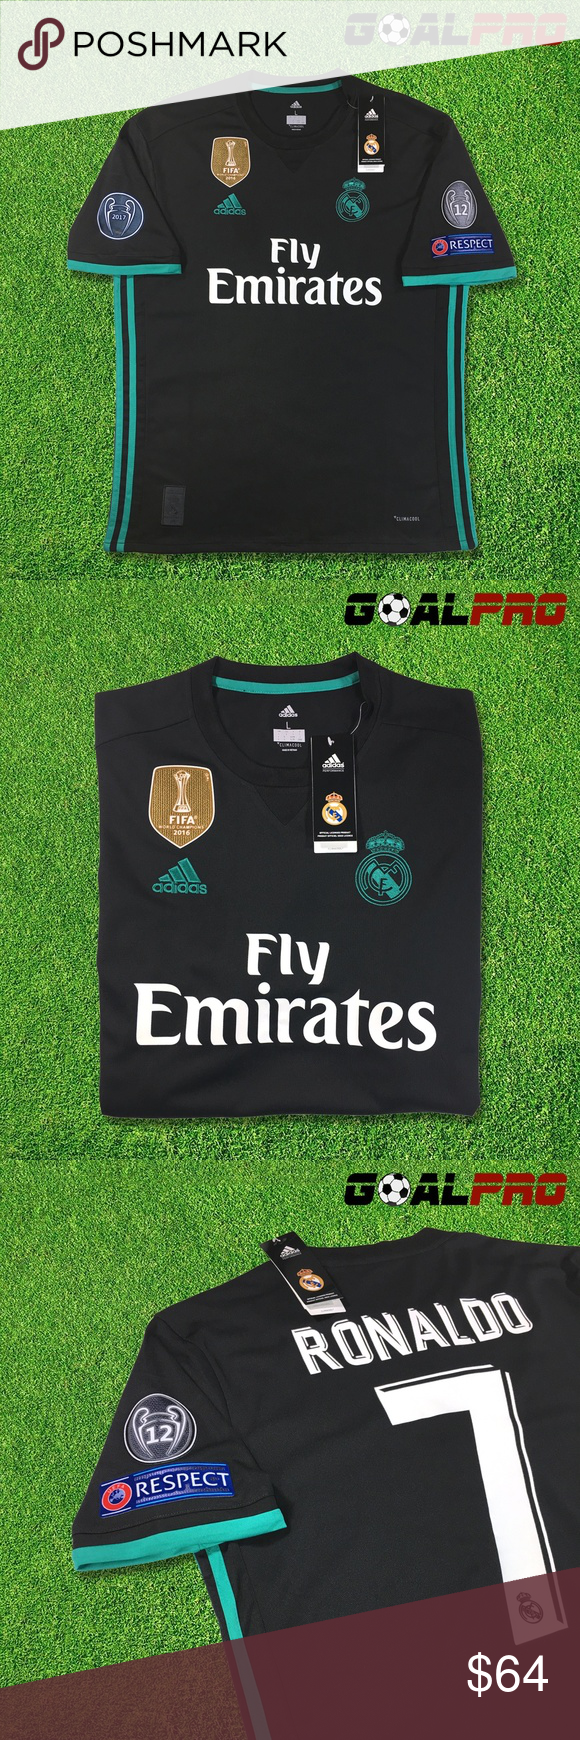 Jersey For Season 2017 18 Brand New With All Original Packaging Adidas Climacool Version UEFA Champions League Edition 2018 2016 FIFA World Cup